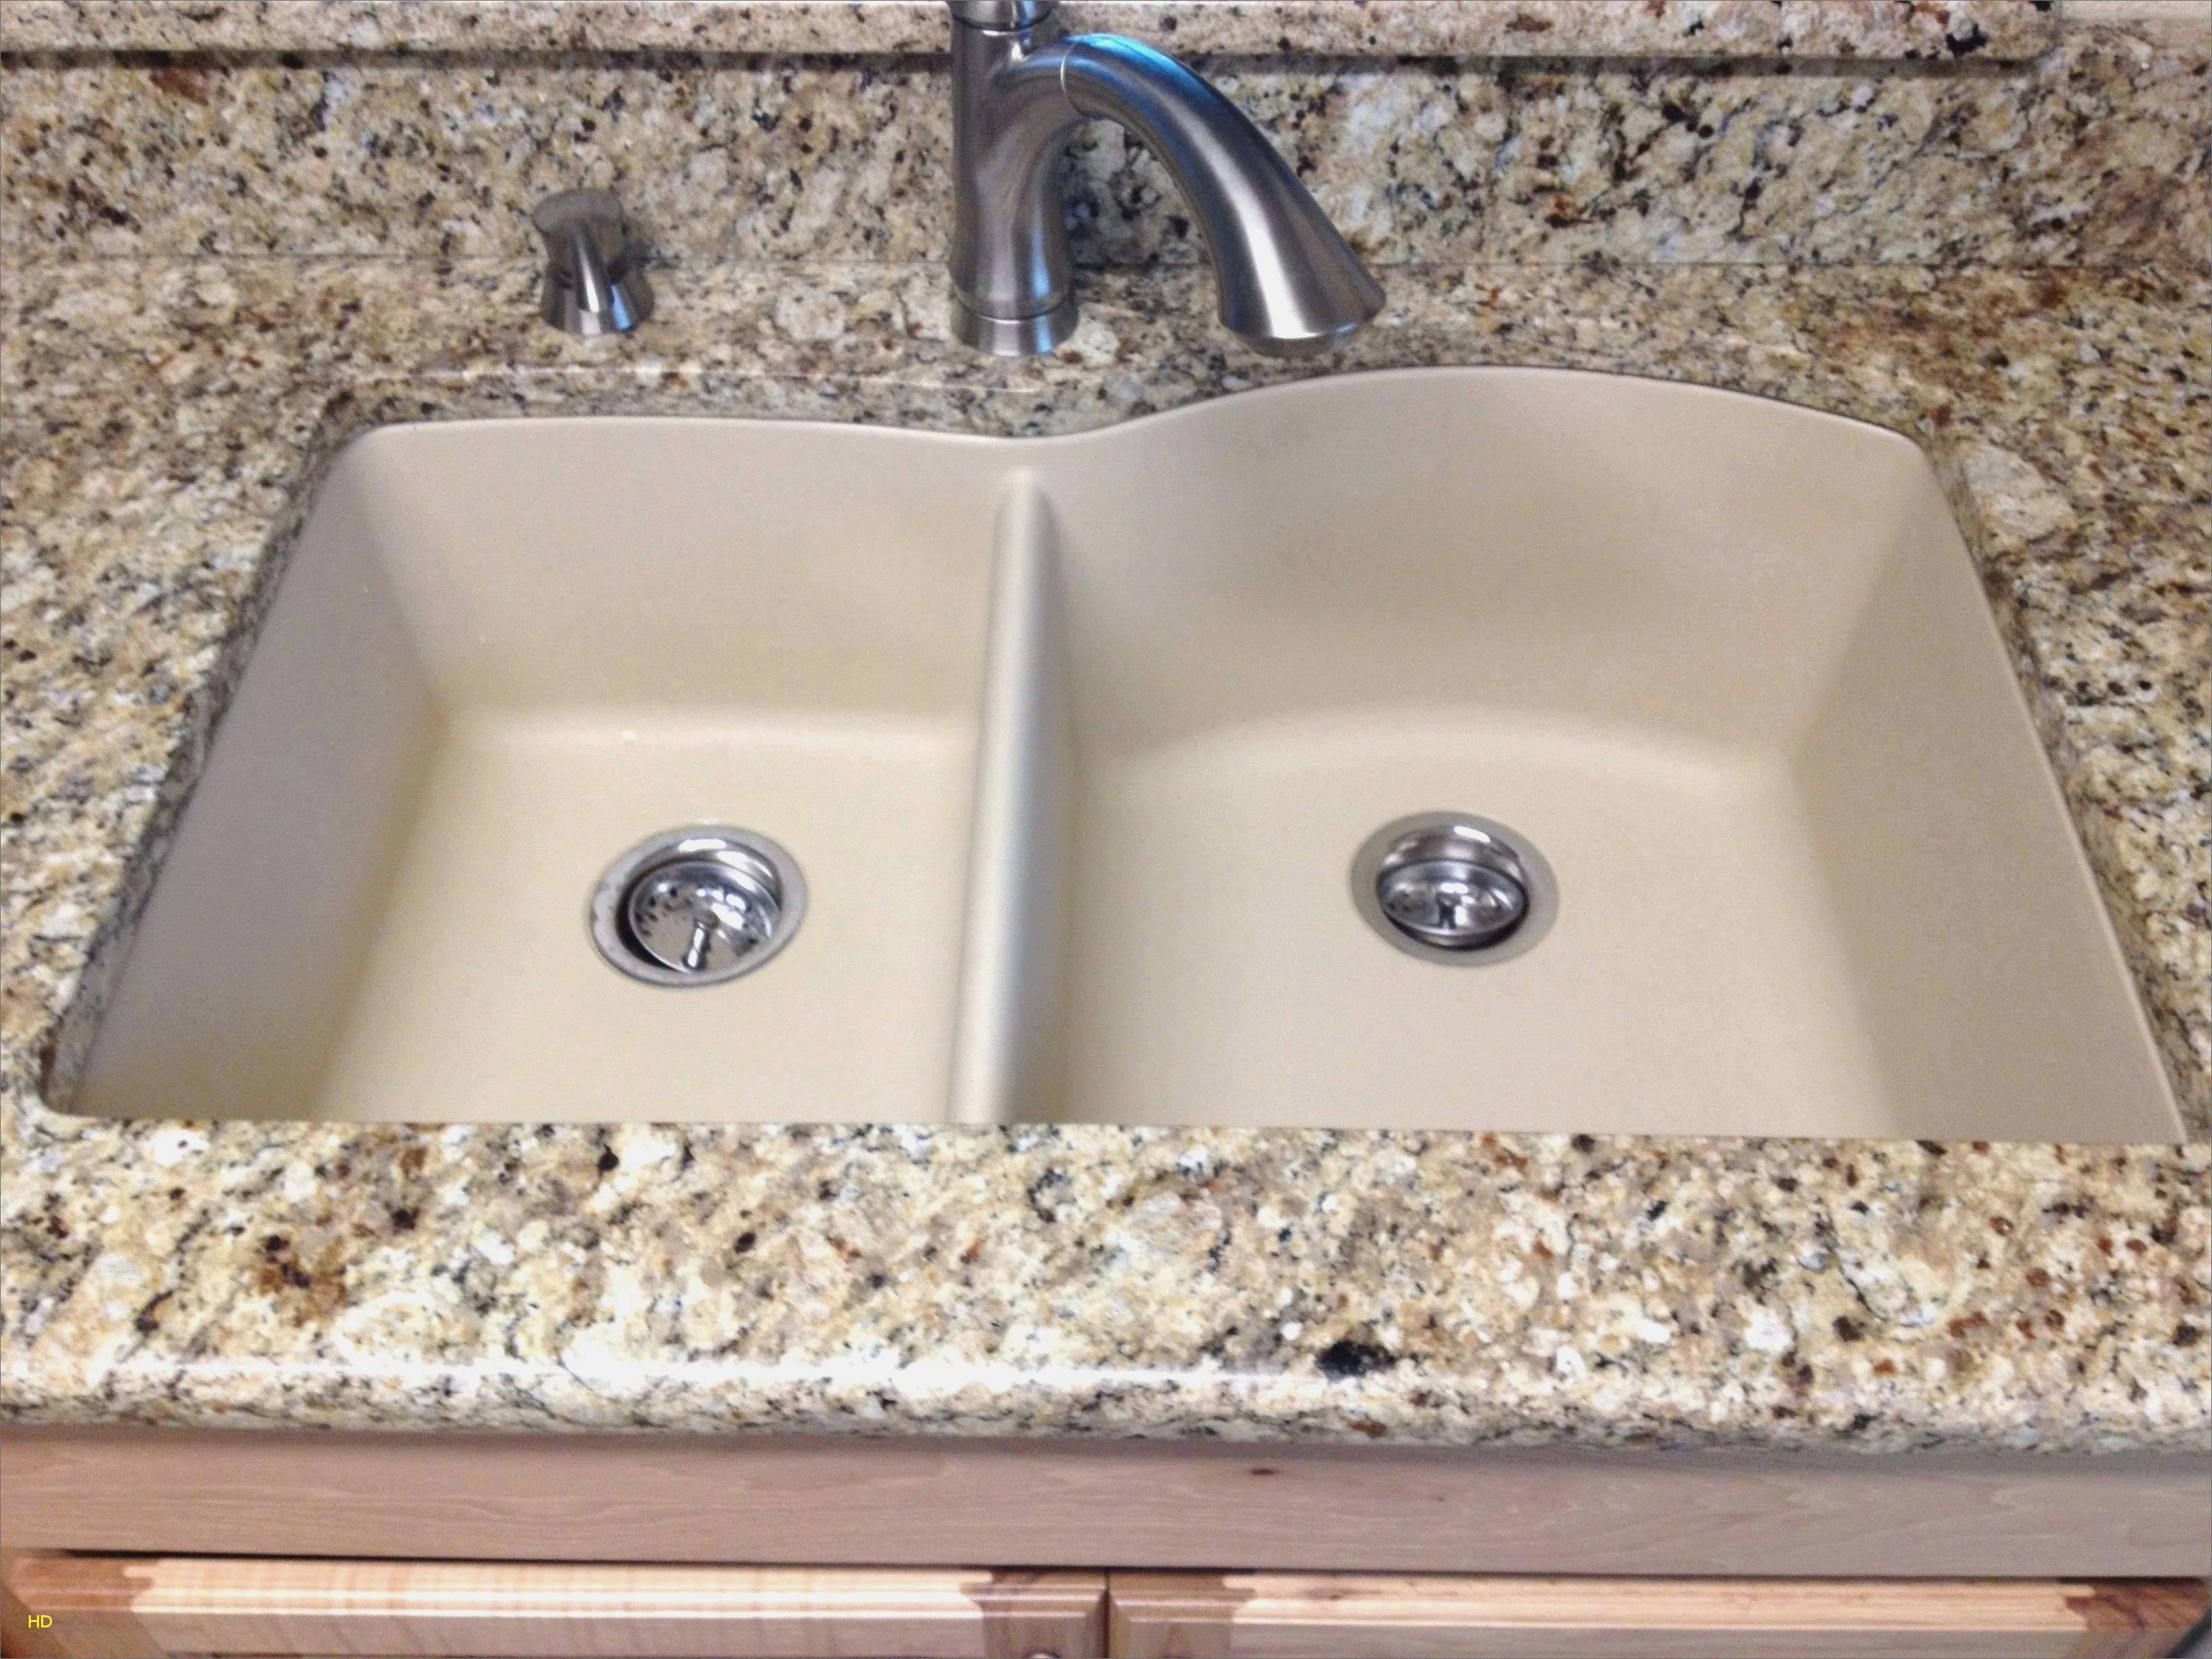 counter top materials awesome blanco kitchen sinks new cuisine dusine avis blanco kitchen 4h sink of counter top materials